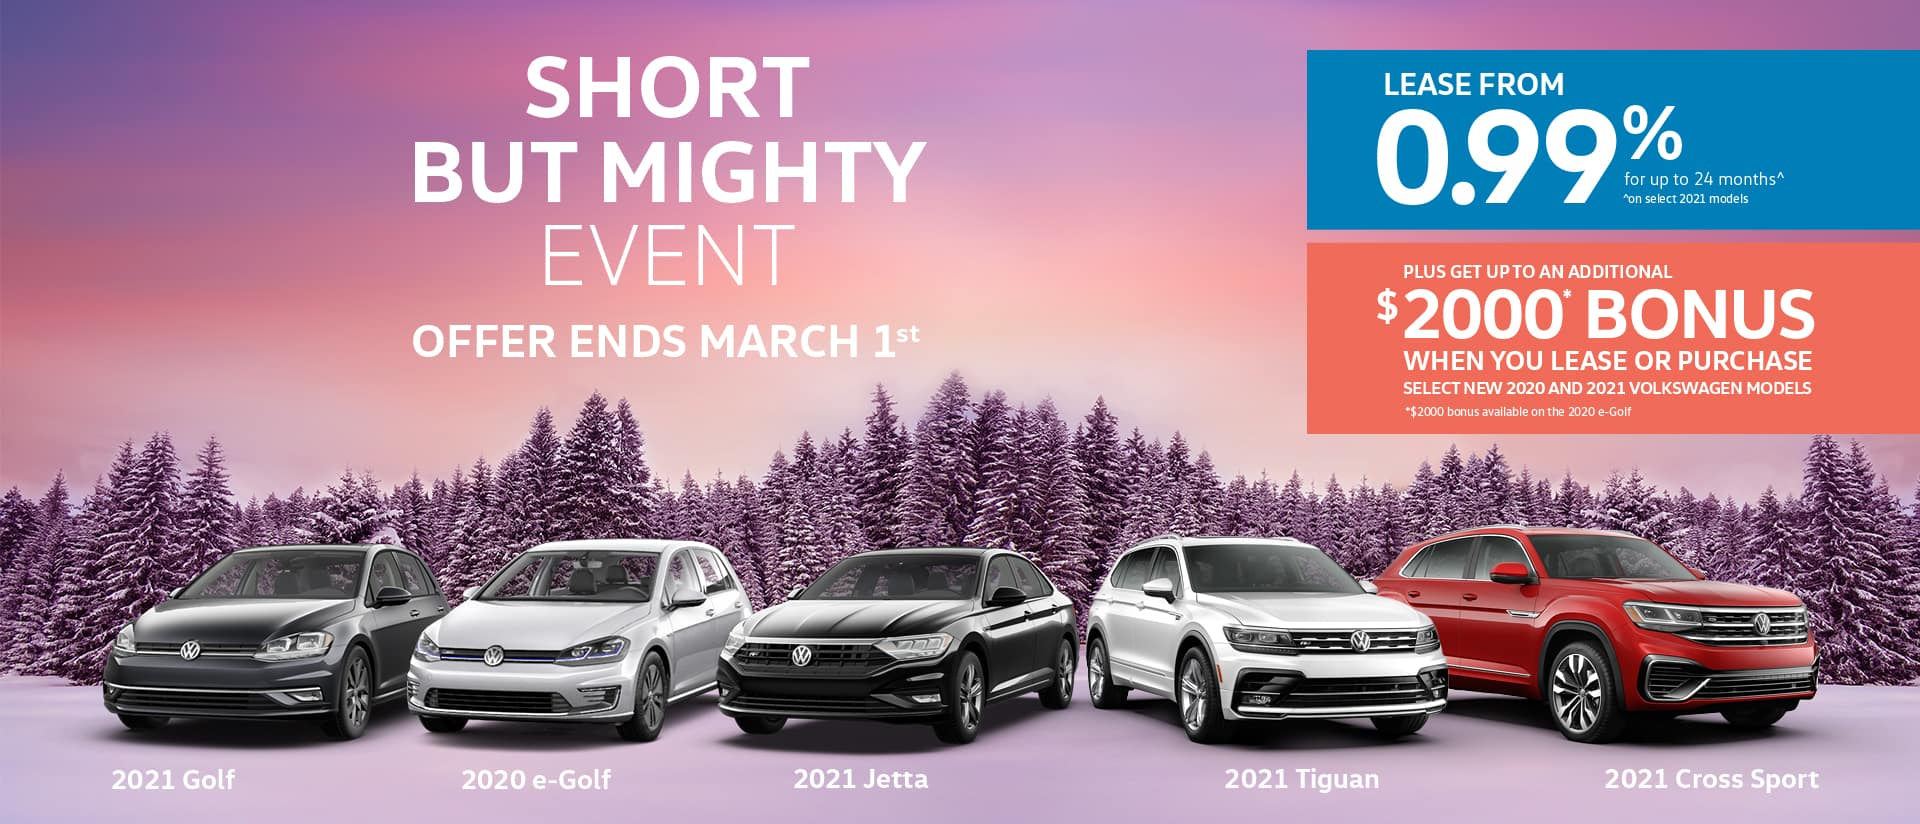 Short by Might Event promotion